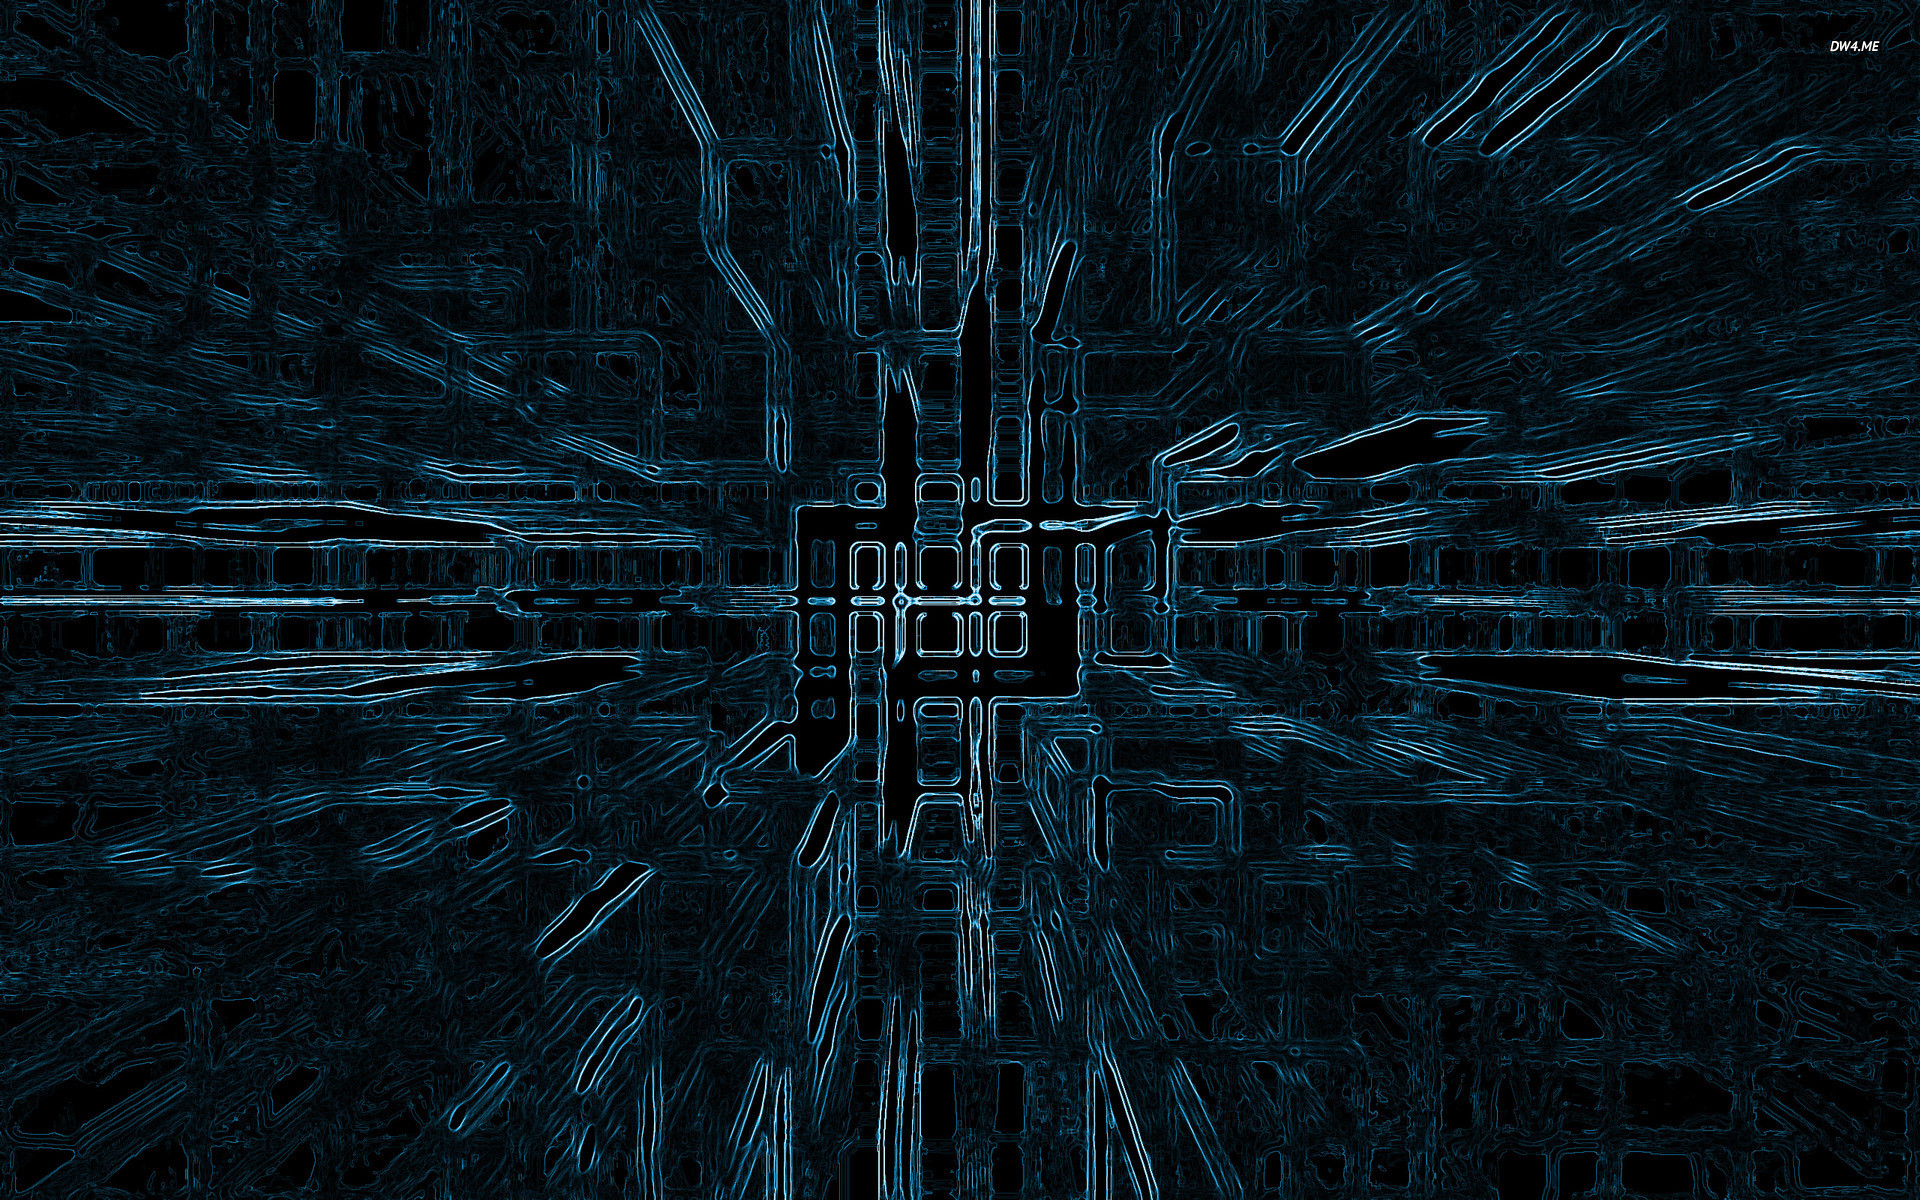 Absract Wallpapers Hd Images Images For Large Screen: HD Wallpapers Full Screen (71+ Images